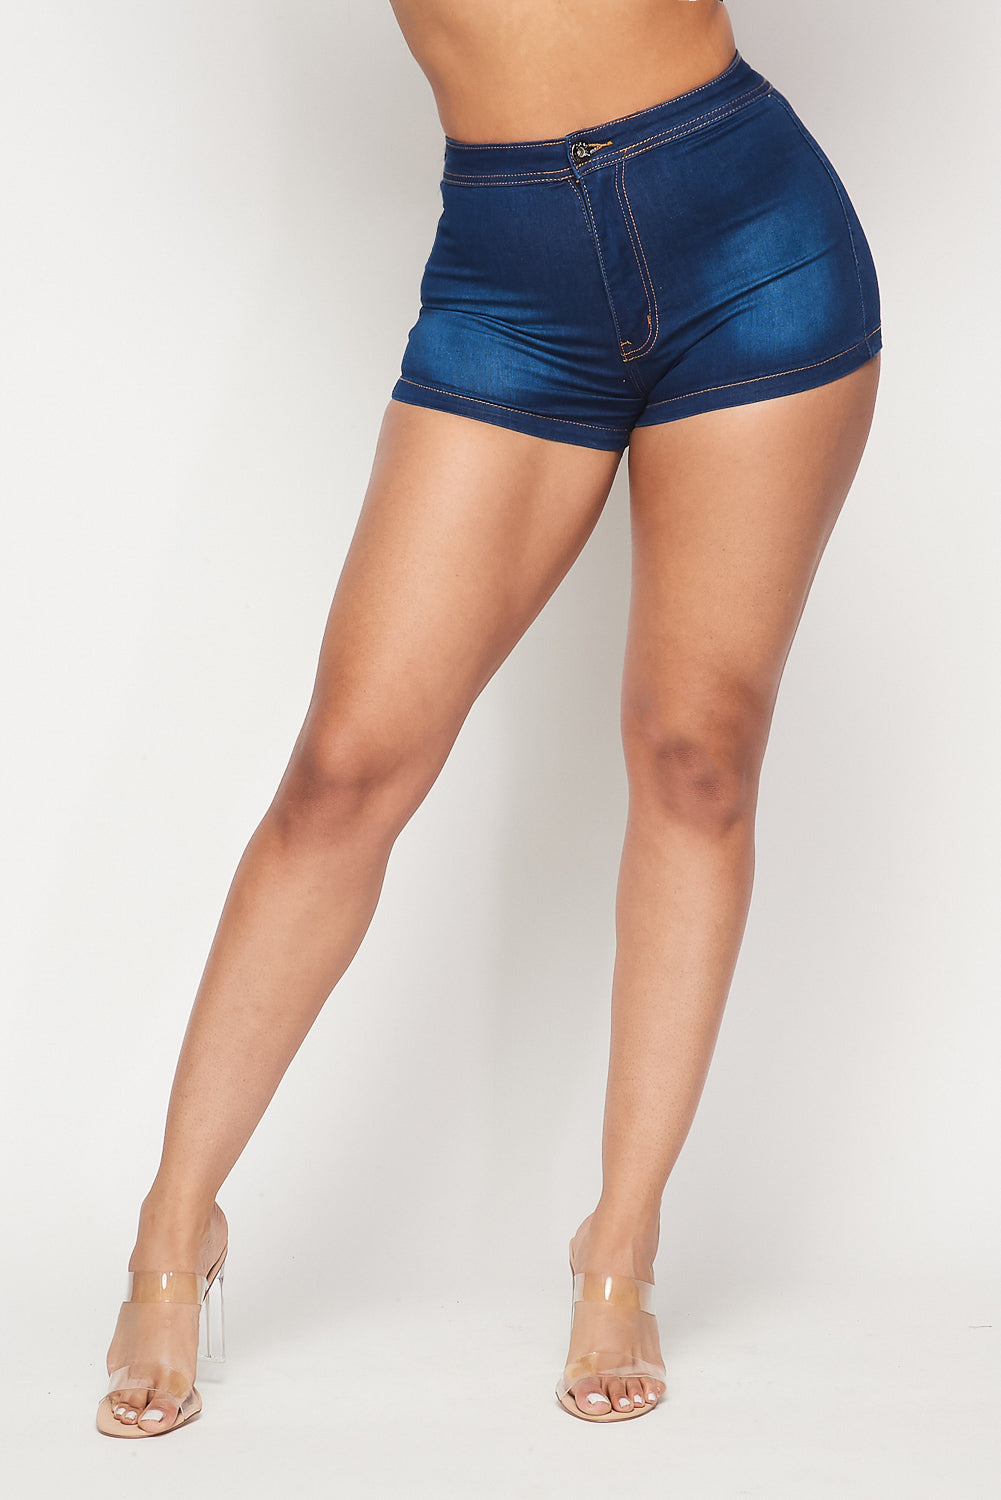 High Waist Stretch Denim Shorts - M.Blue - Fashion House USA